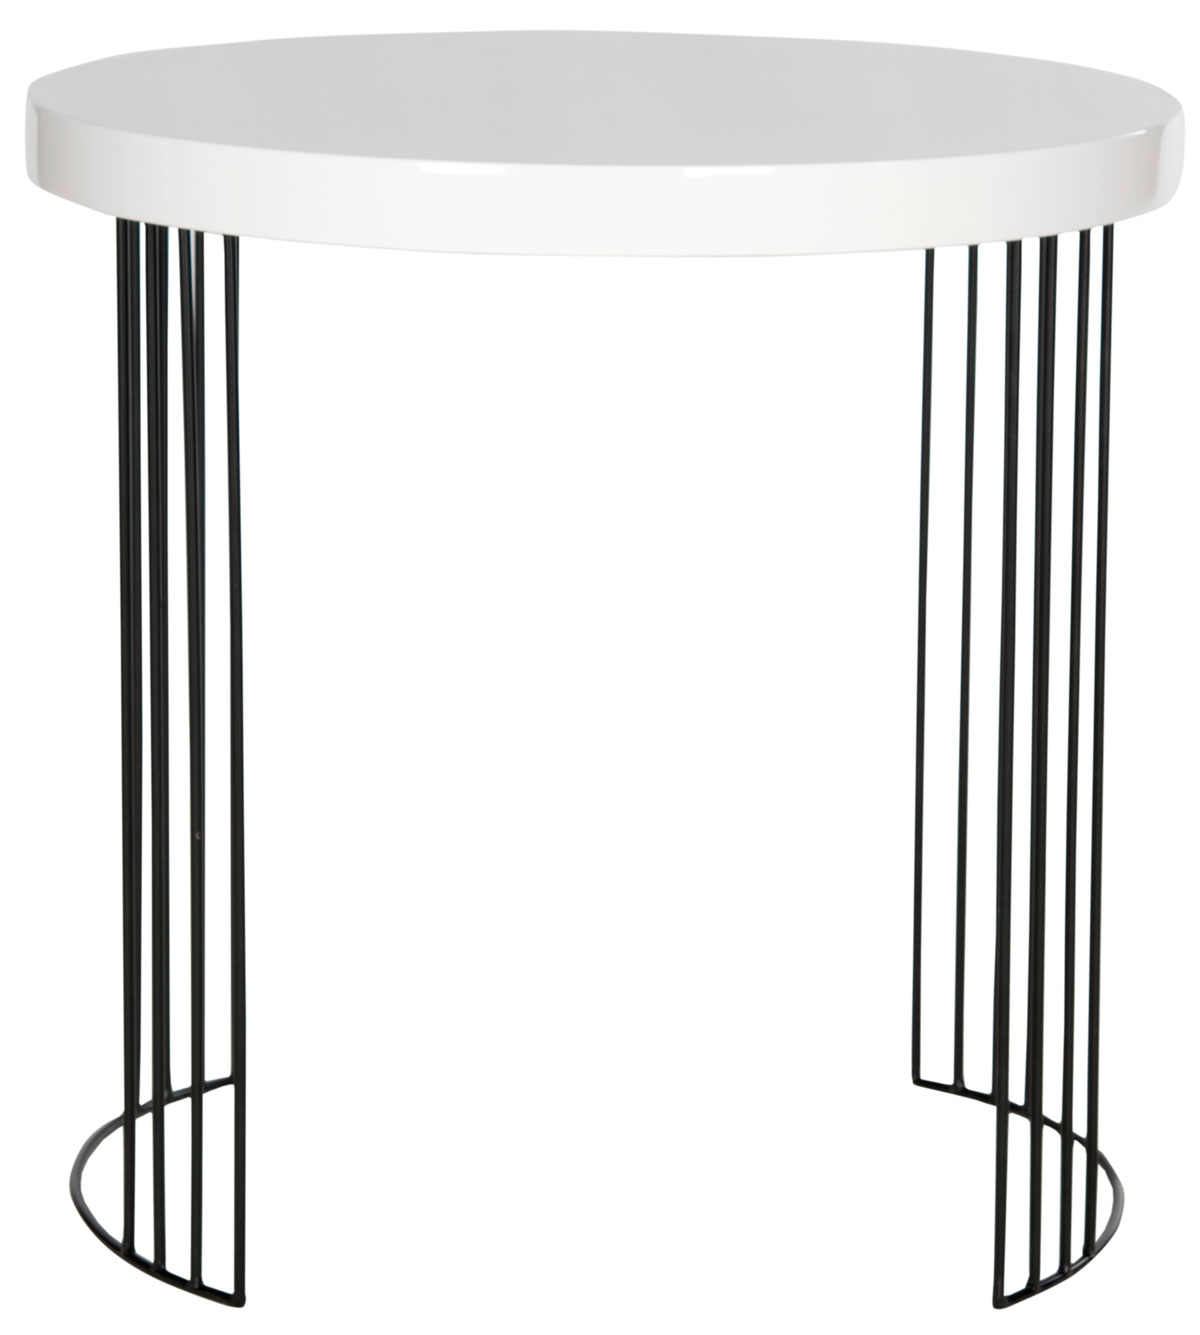 accent tables furniture safavieh front white lacquer table share this product unique round tablecloths bbq prep decorating console entryway ikea storage bins outdoor cushions navy